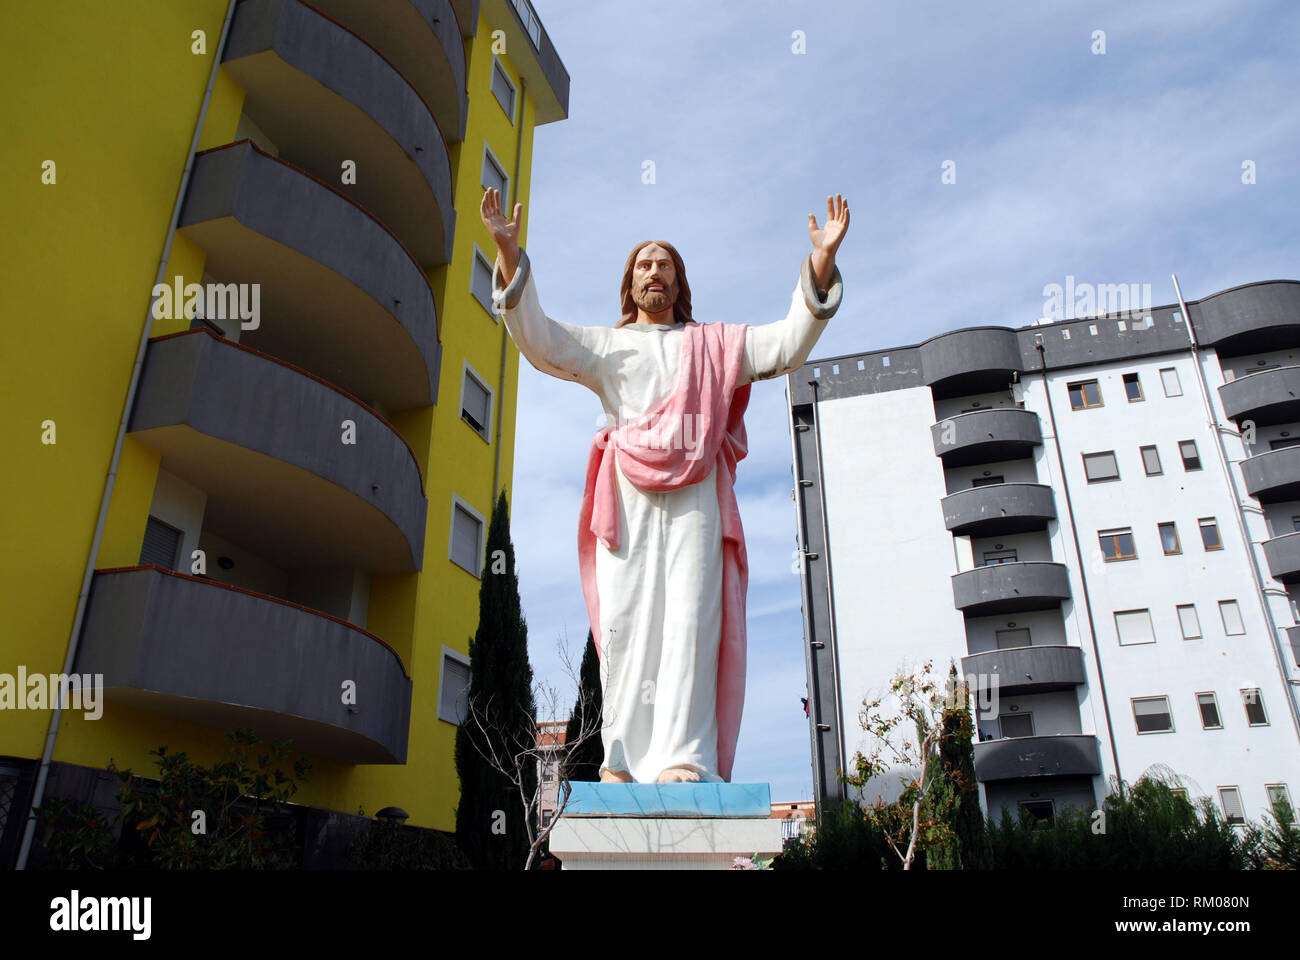 big and impressive statue of christ placed at the entrance of a residential complex as an ostentatious symbol of faith - Stock Image